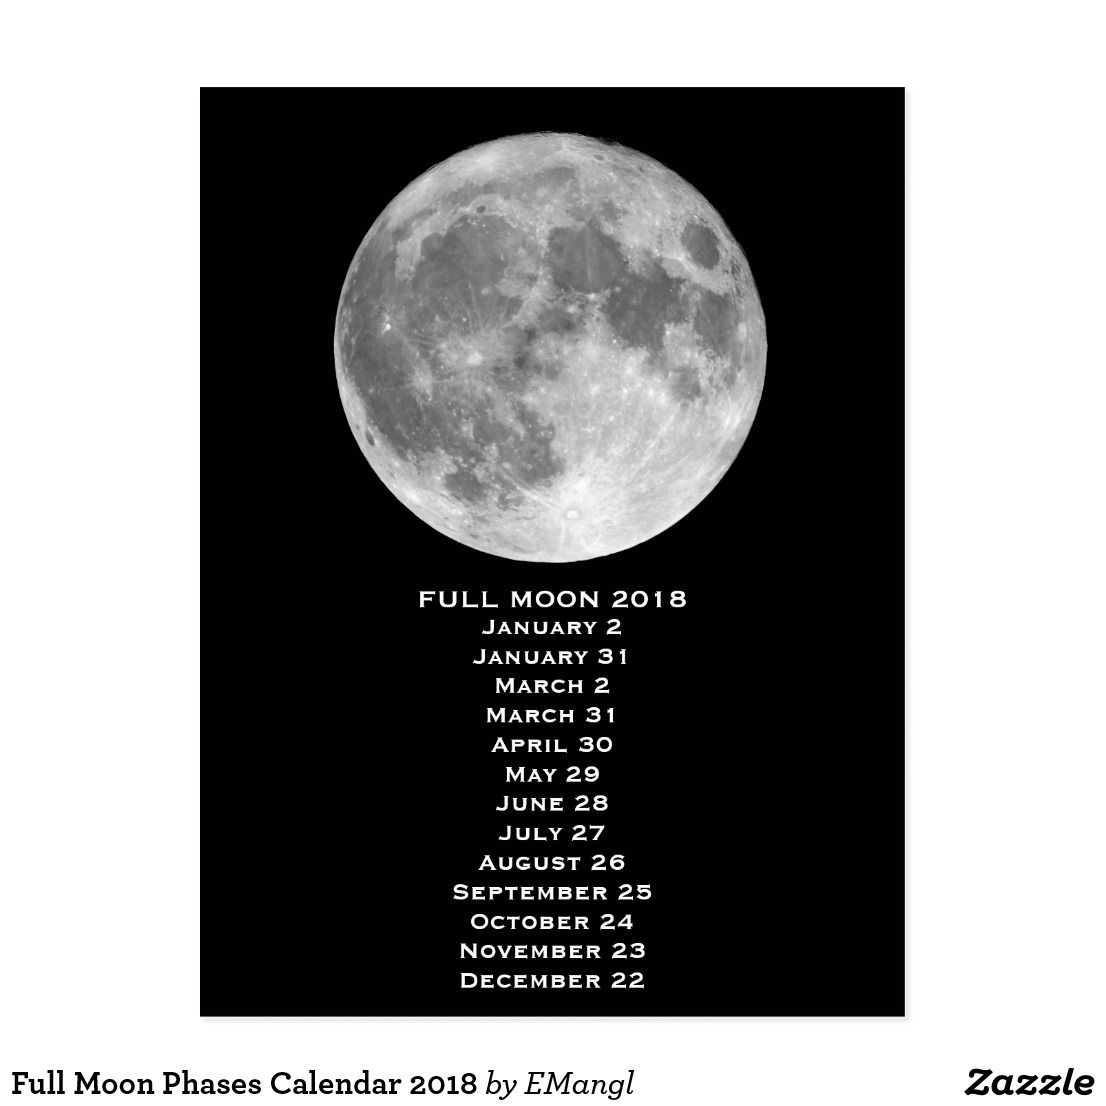 Full moon in december 2018 62